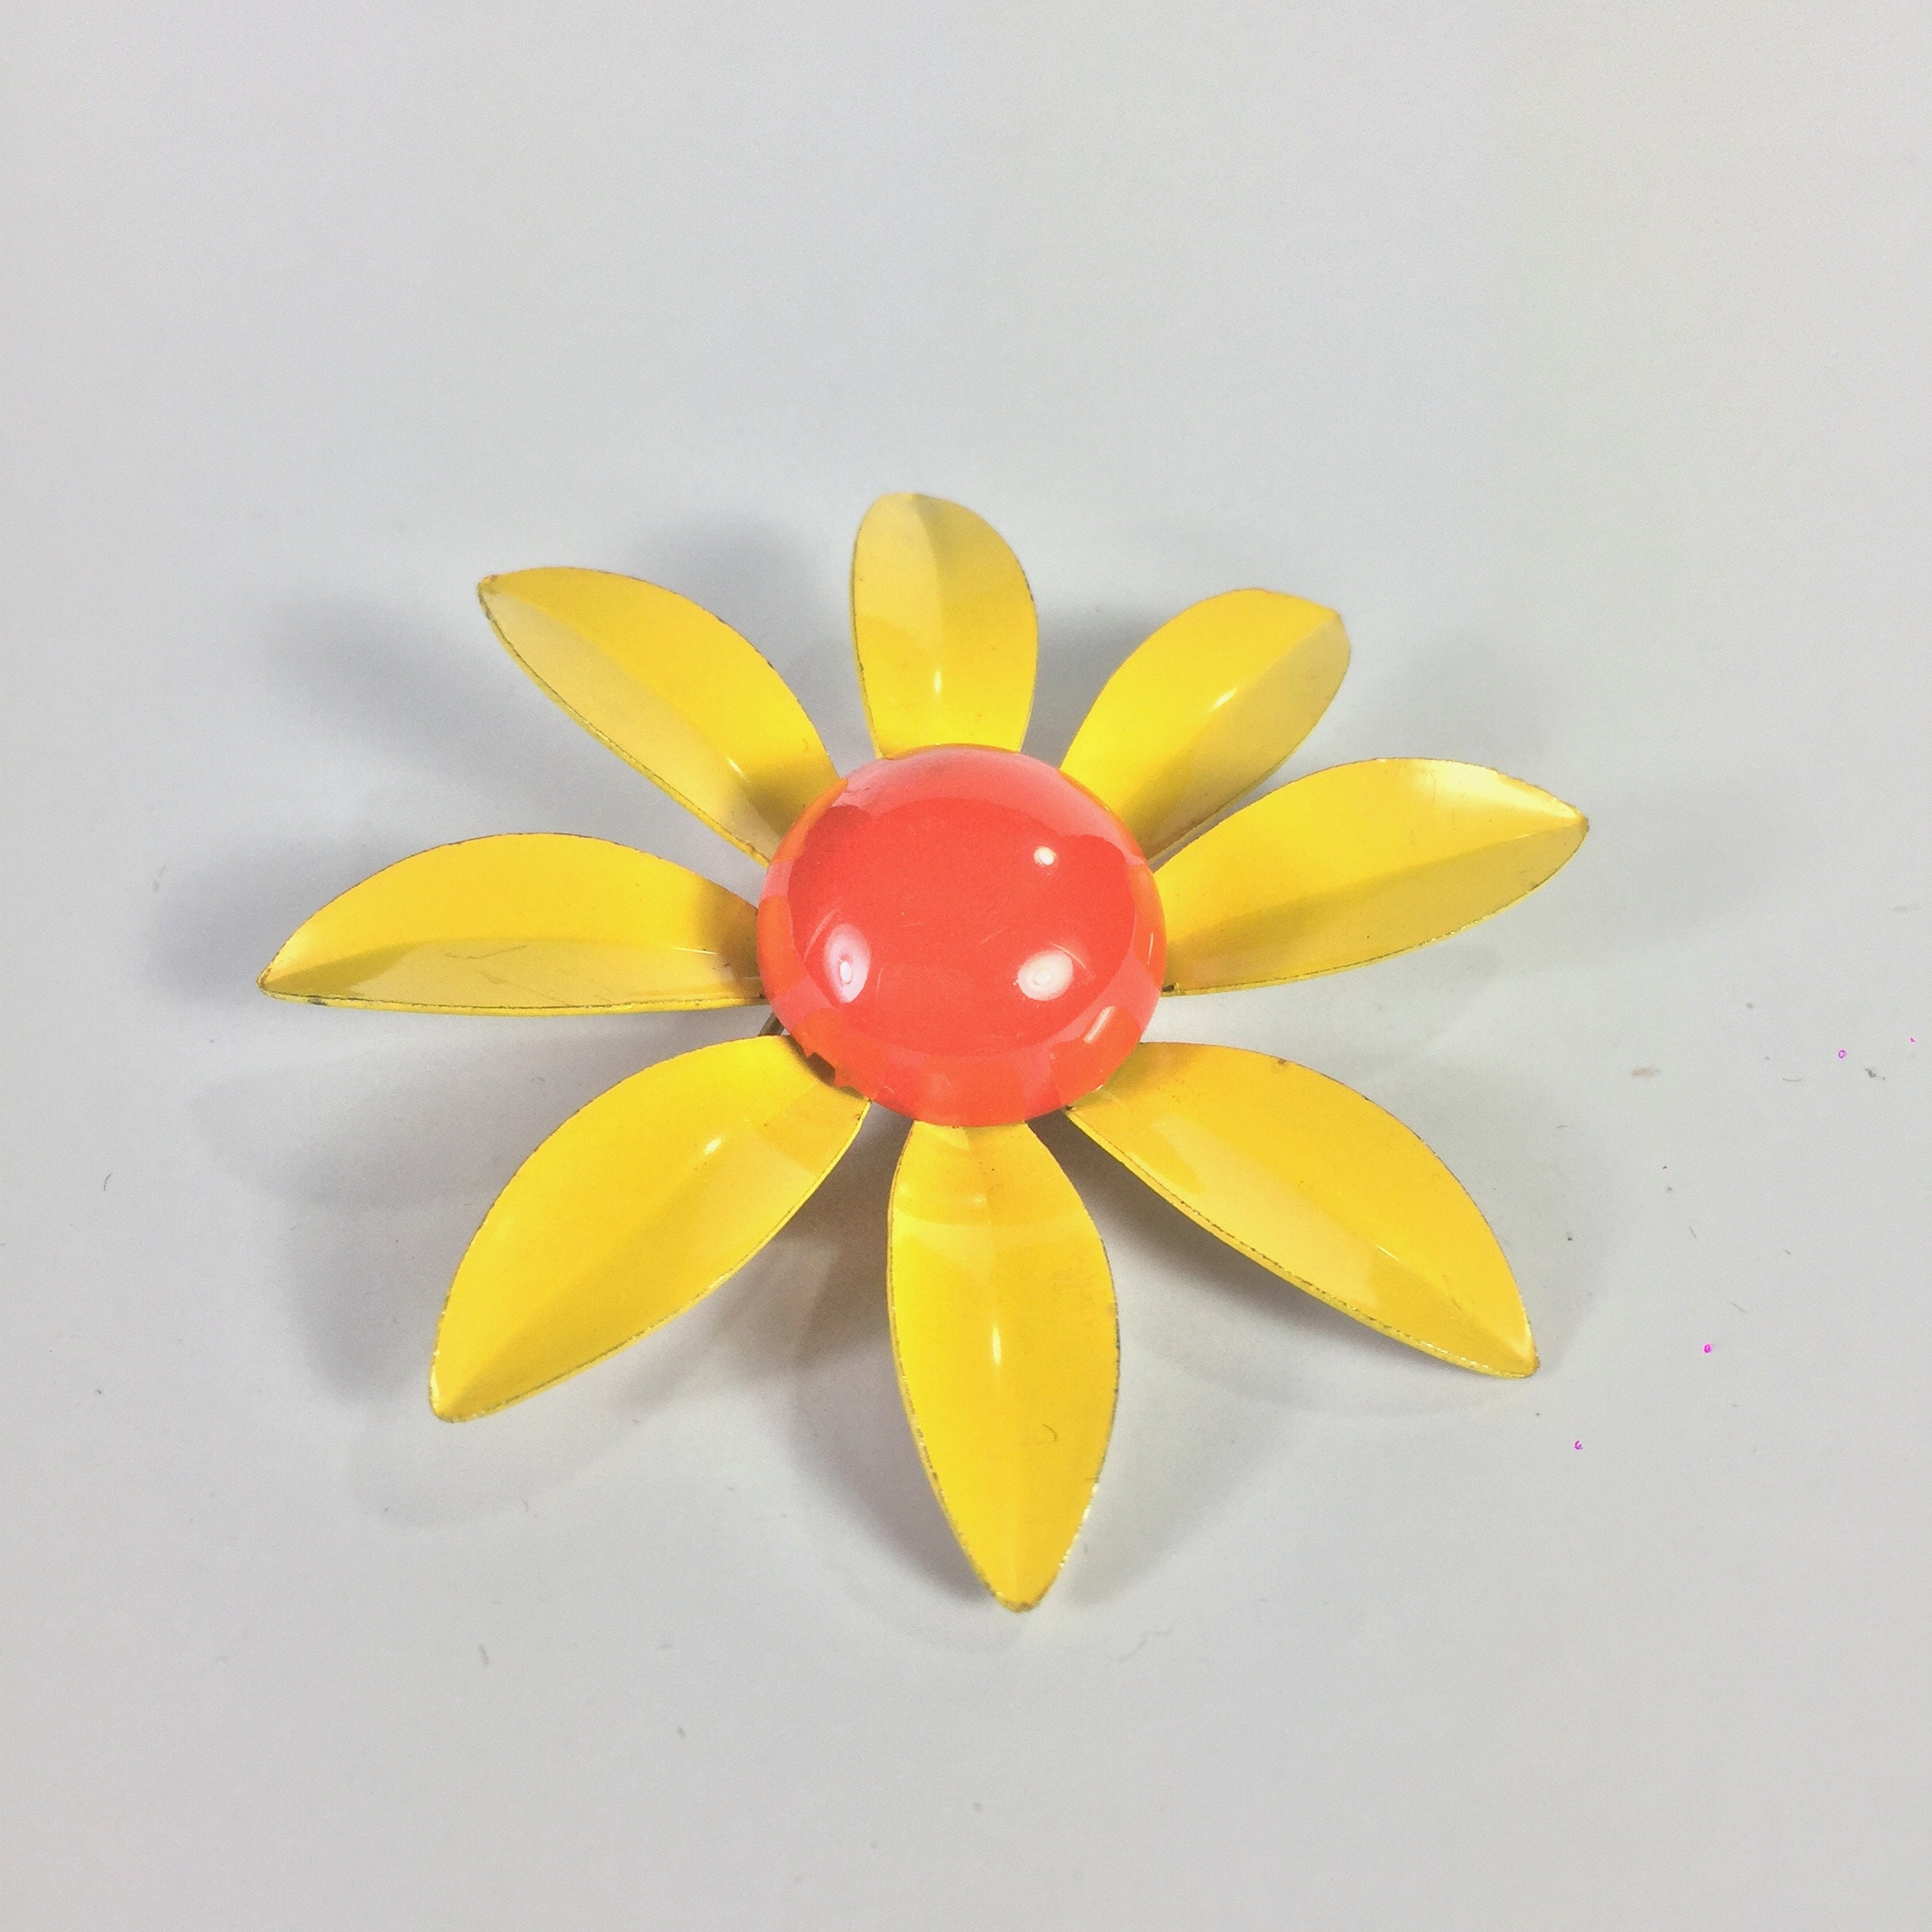 c7392a3cafb Vintage yellow DAISY flower enamel brooch Gold tone floral pin   Etsy